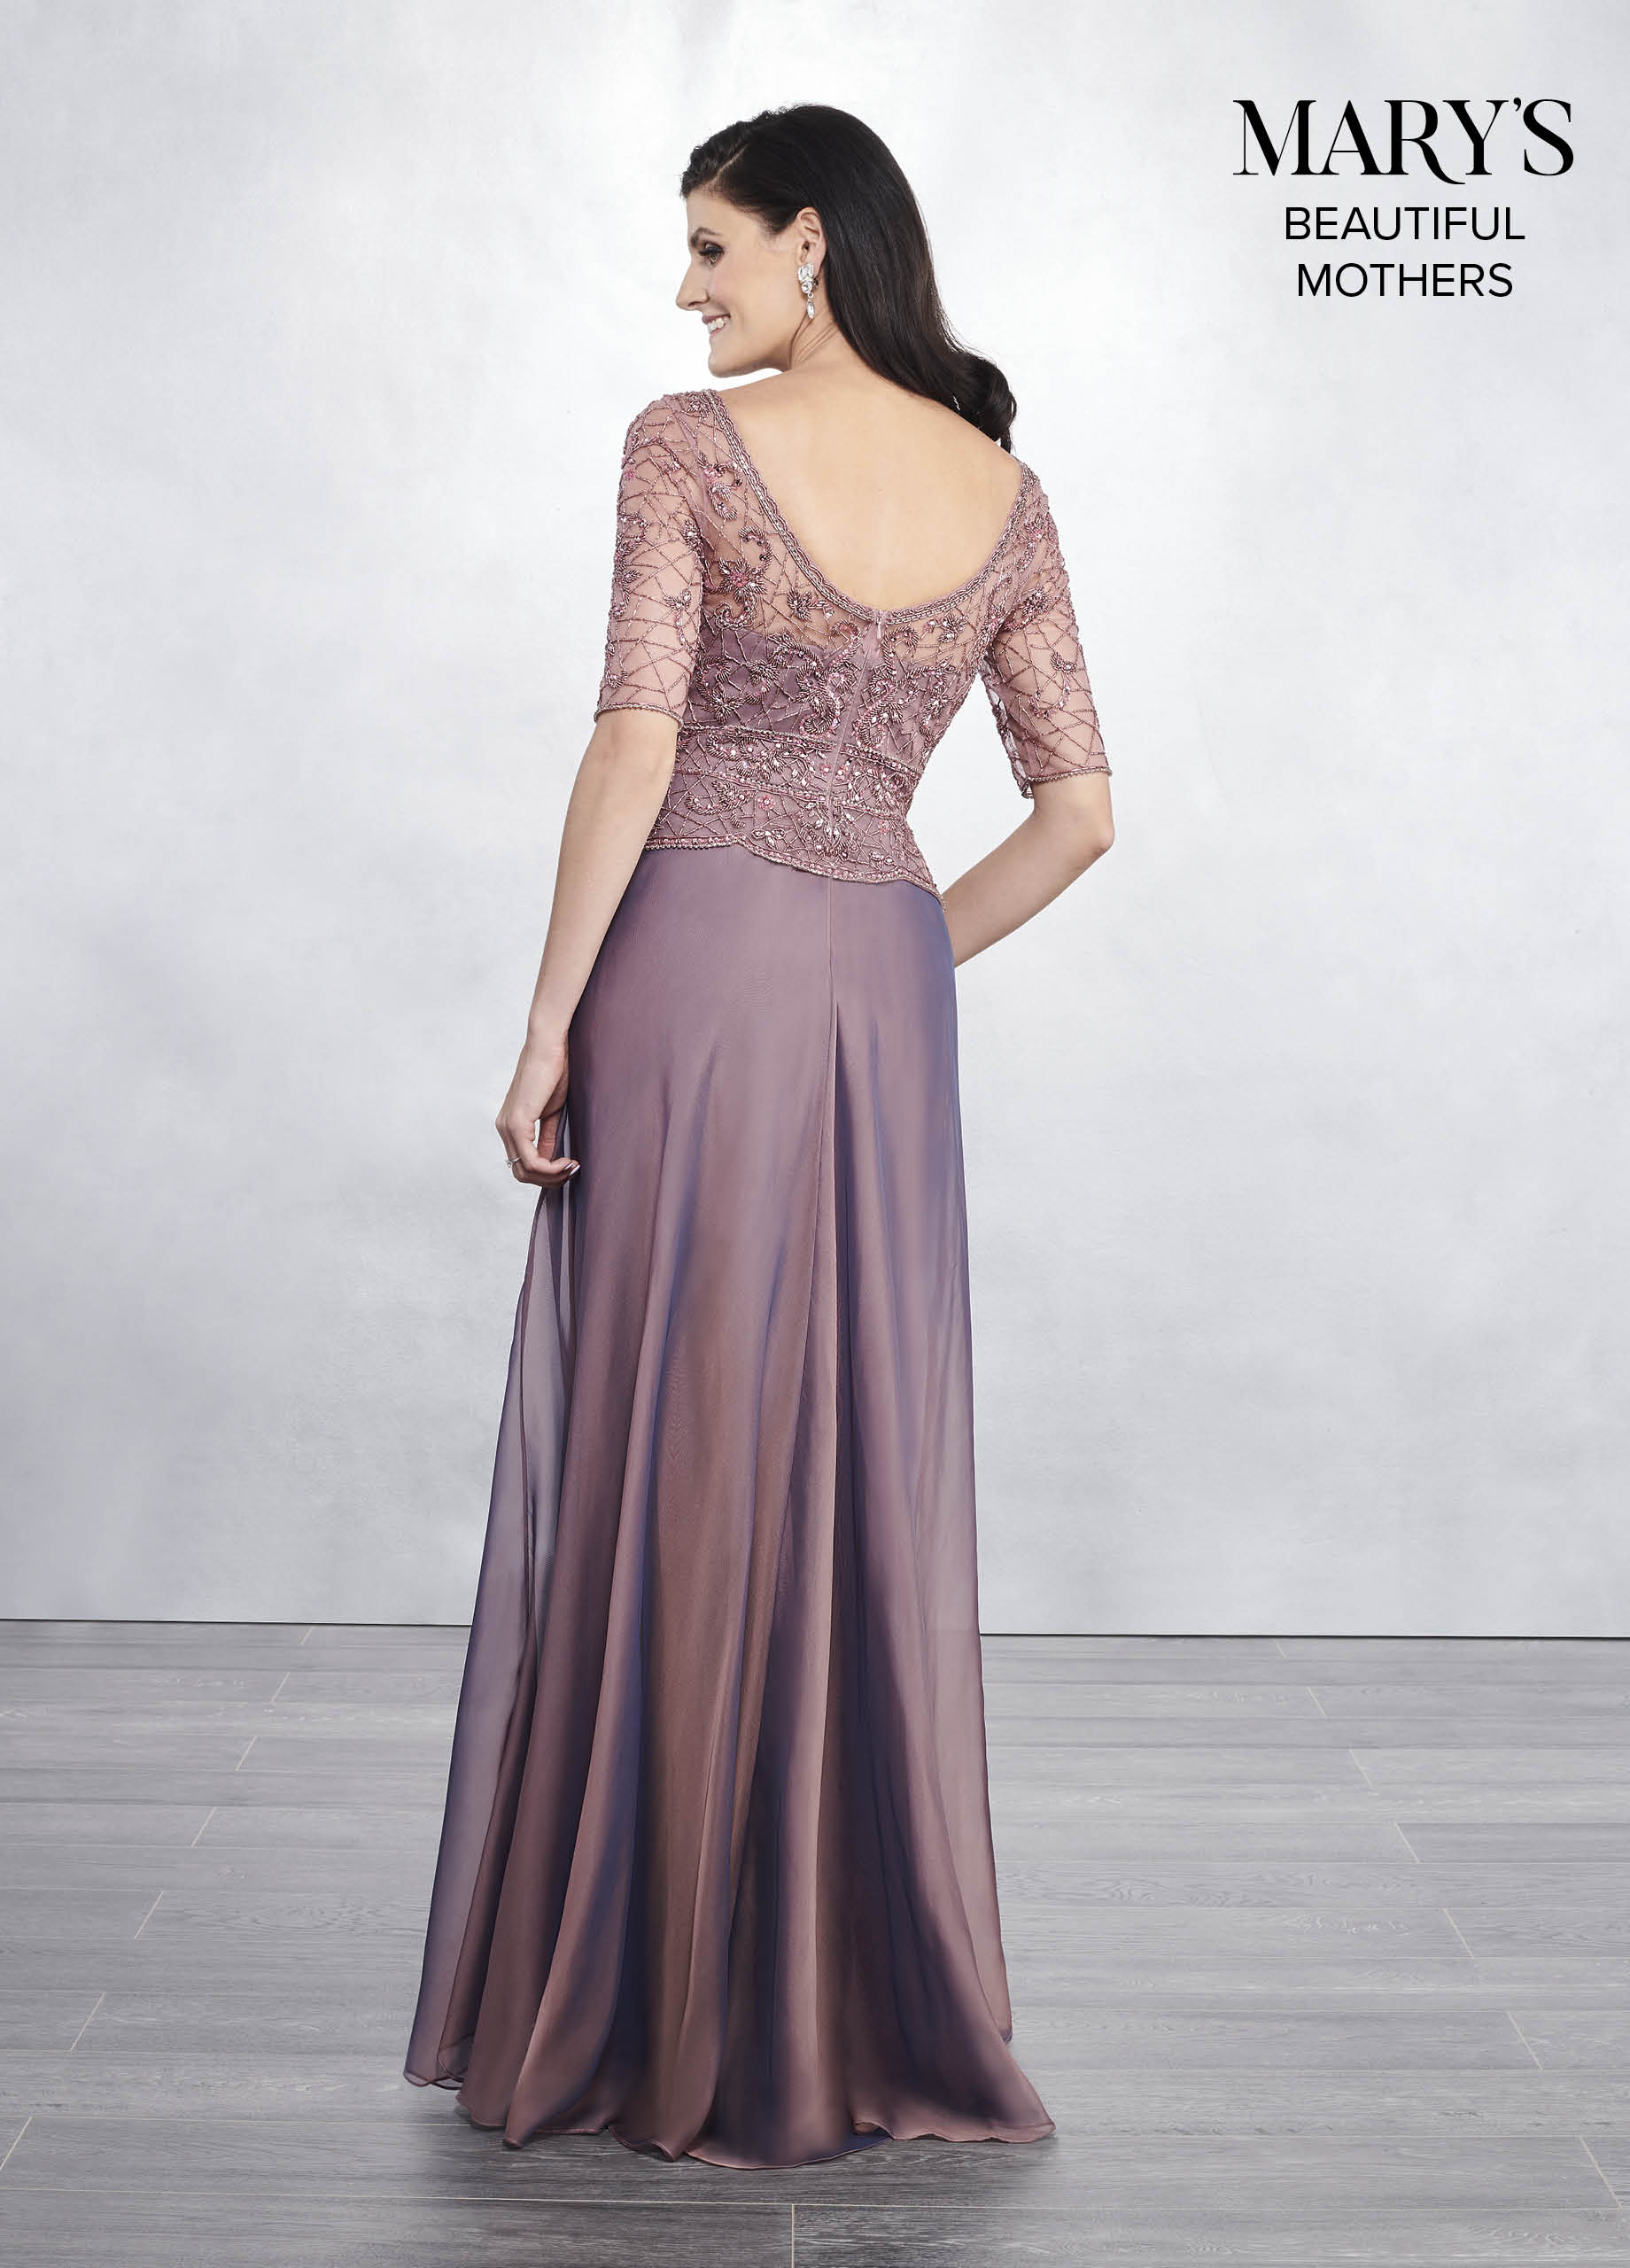 Mother Of The Bride Dresses | Beautiful Mothers | Style - MB8048